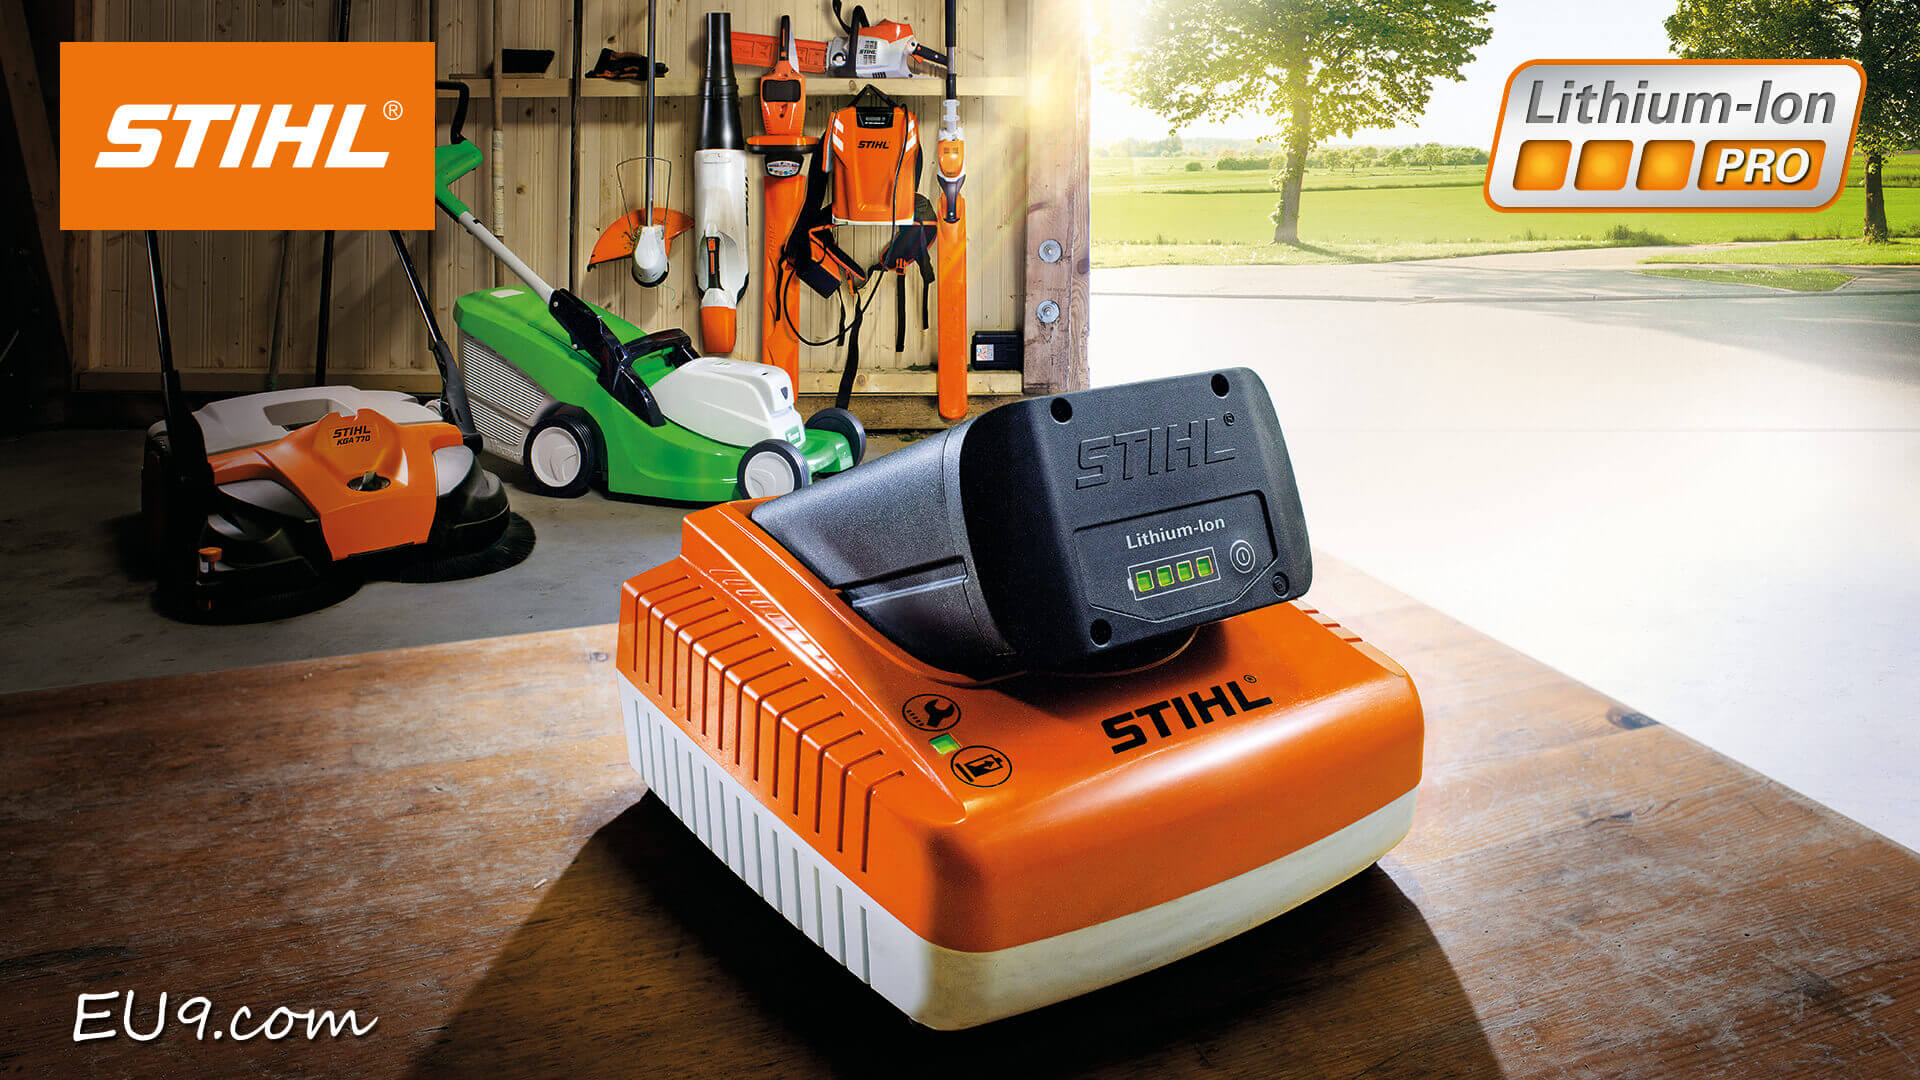 stihl msa 160 c bq kettens ge li ion pro jetzt g nstig kaufen. Black Bedroom Furniture Sets. Home Design Ideas